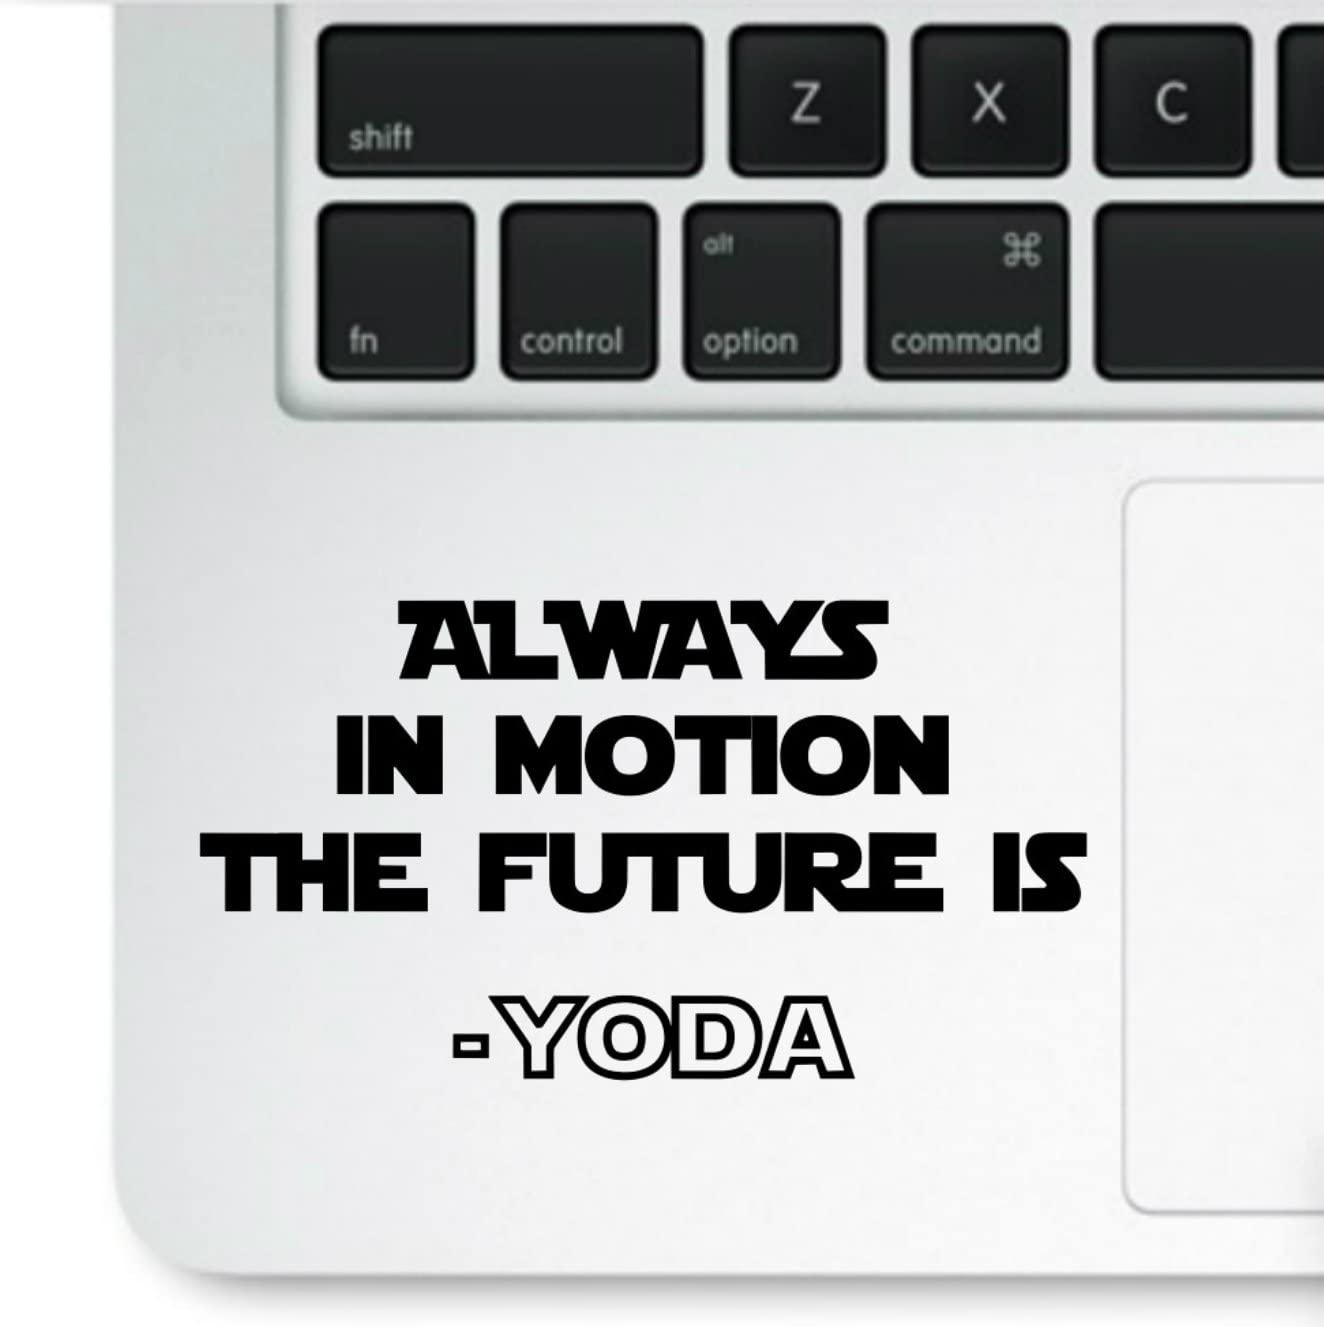 YODA Life Quote - Always in Motion.The Future is - Motivational Inspirational MacBook Sticker Laptop Decal Compatible with All MacBook Pro, Retina and Air Models